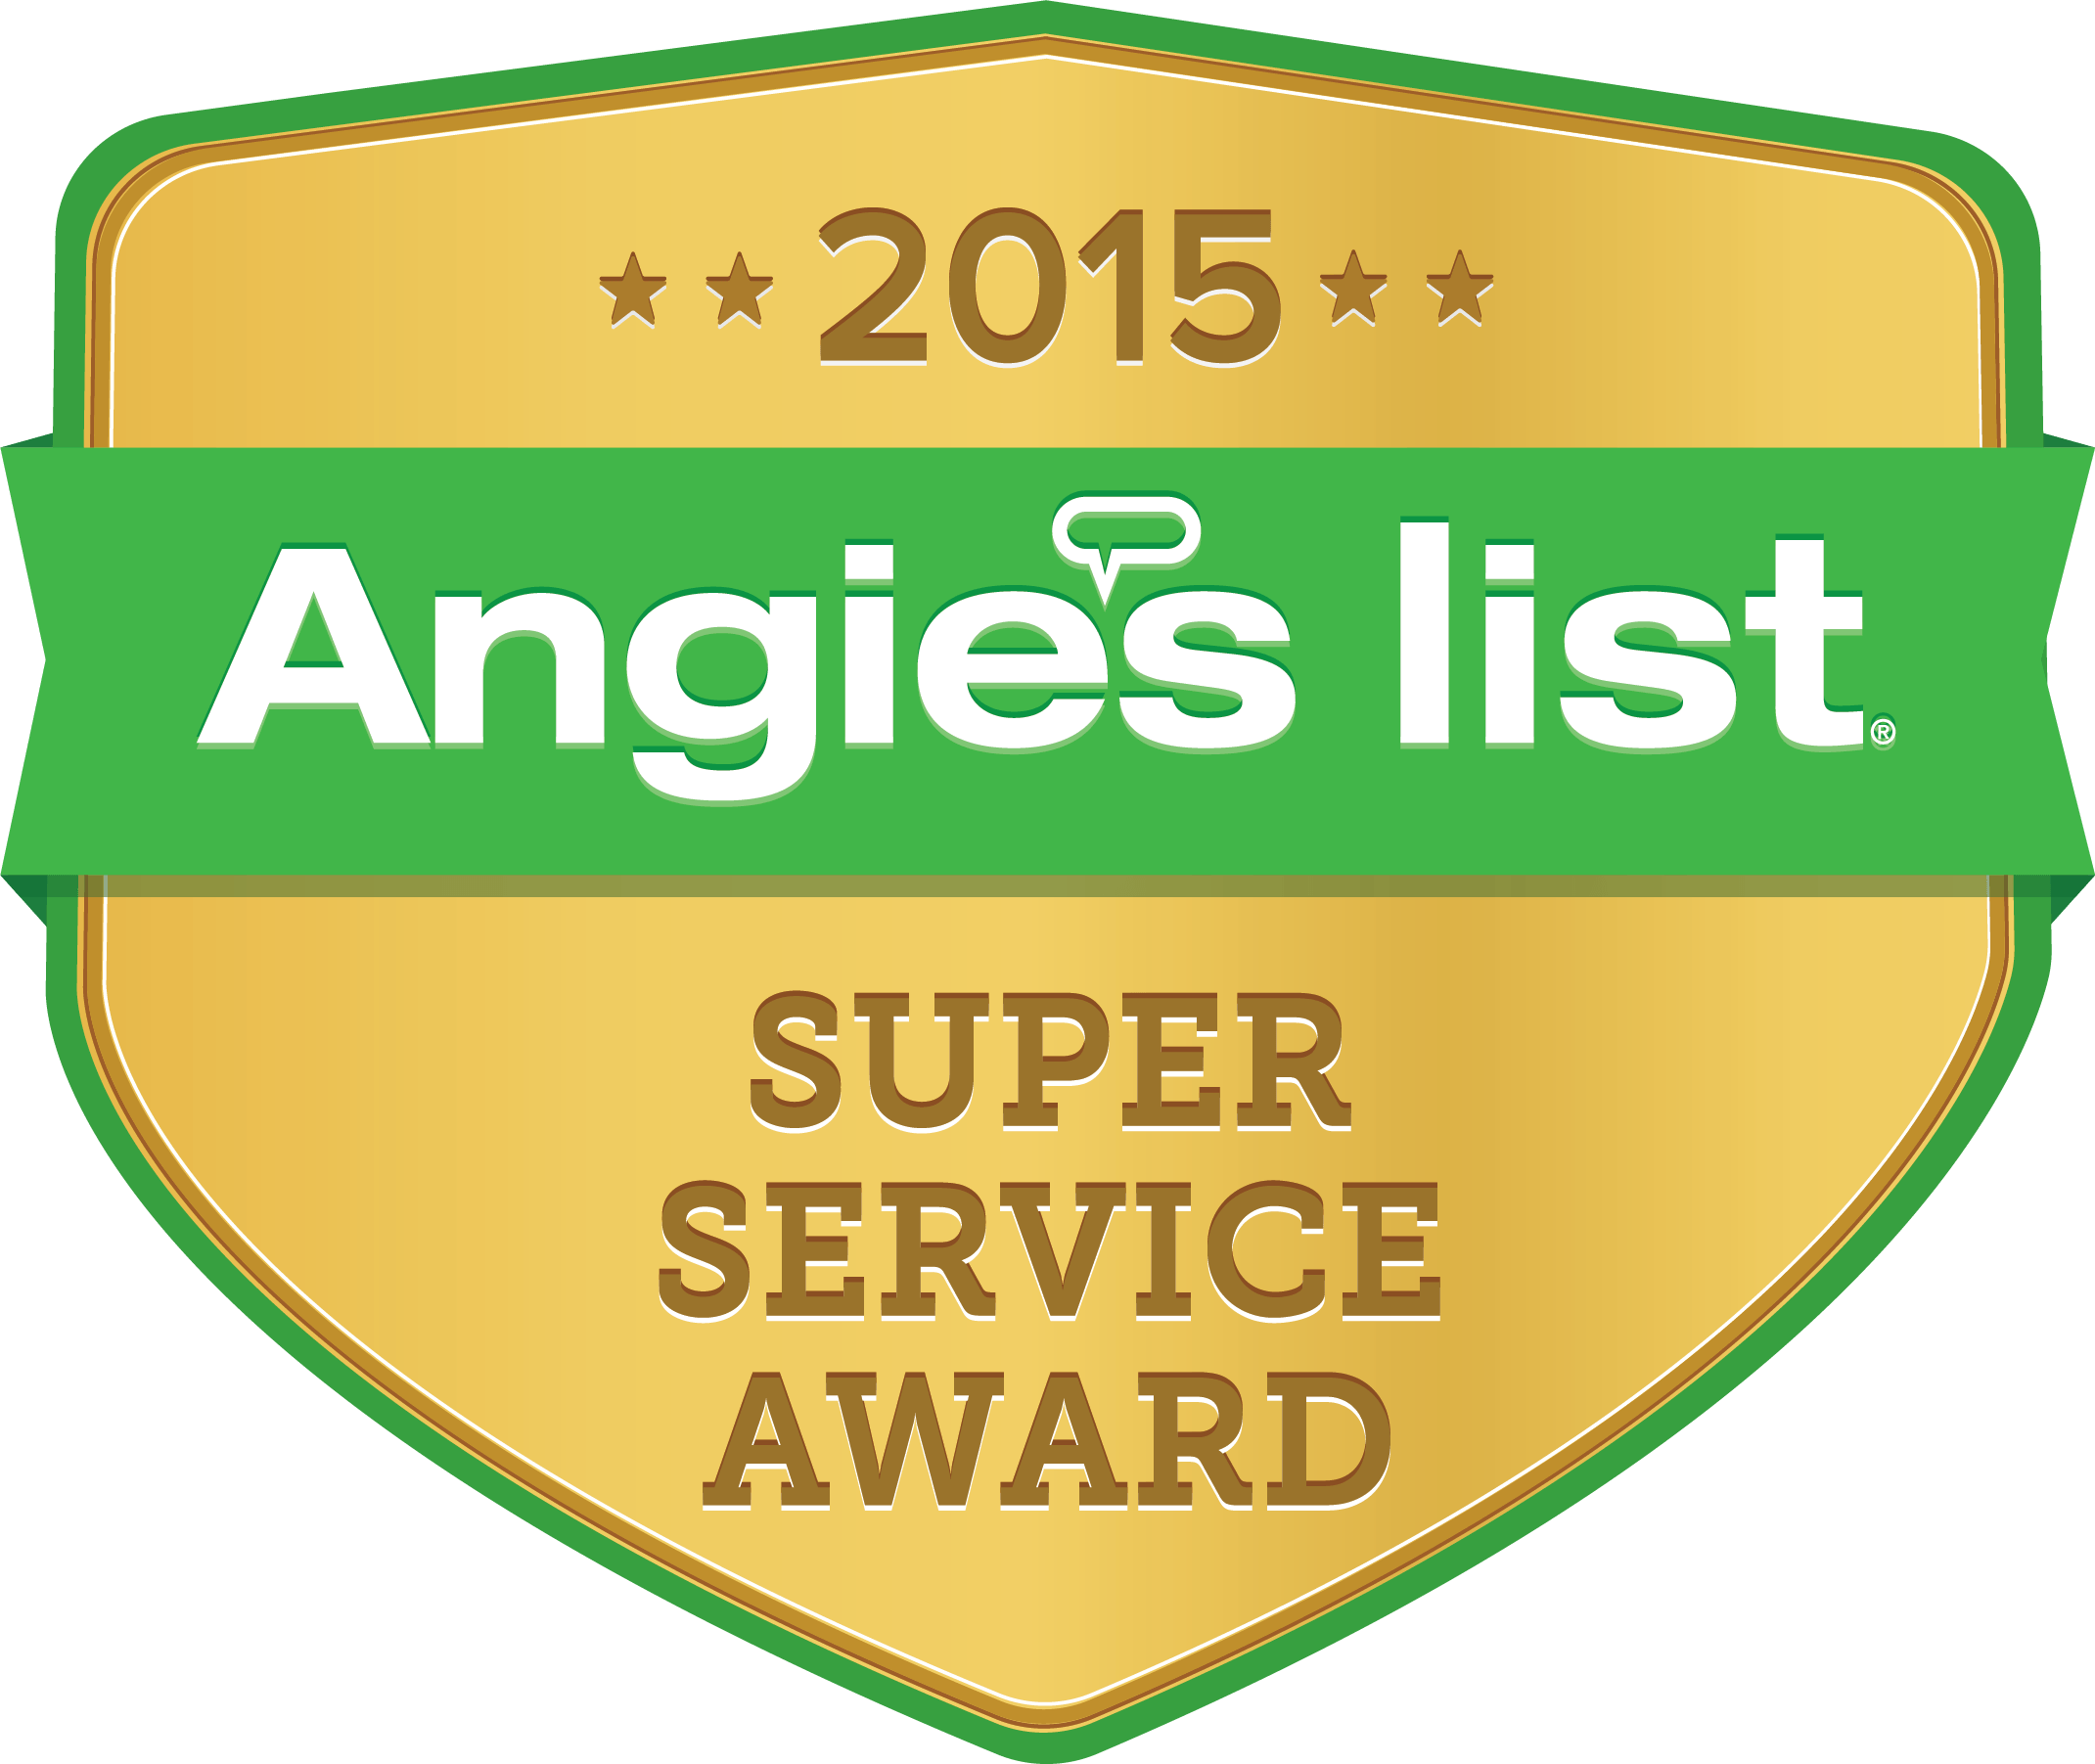 Superservice award